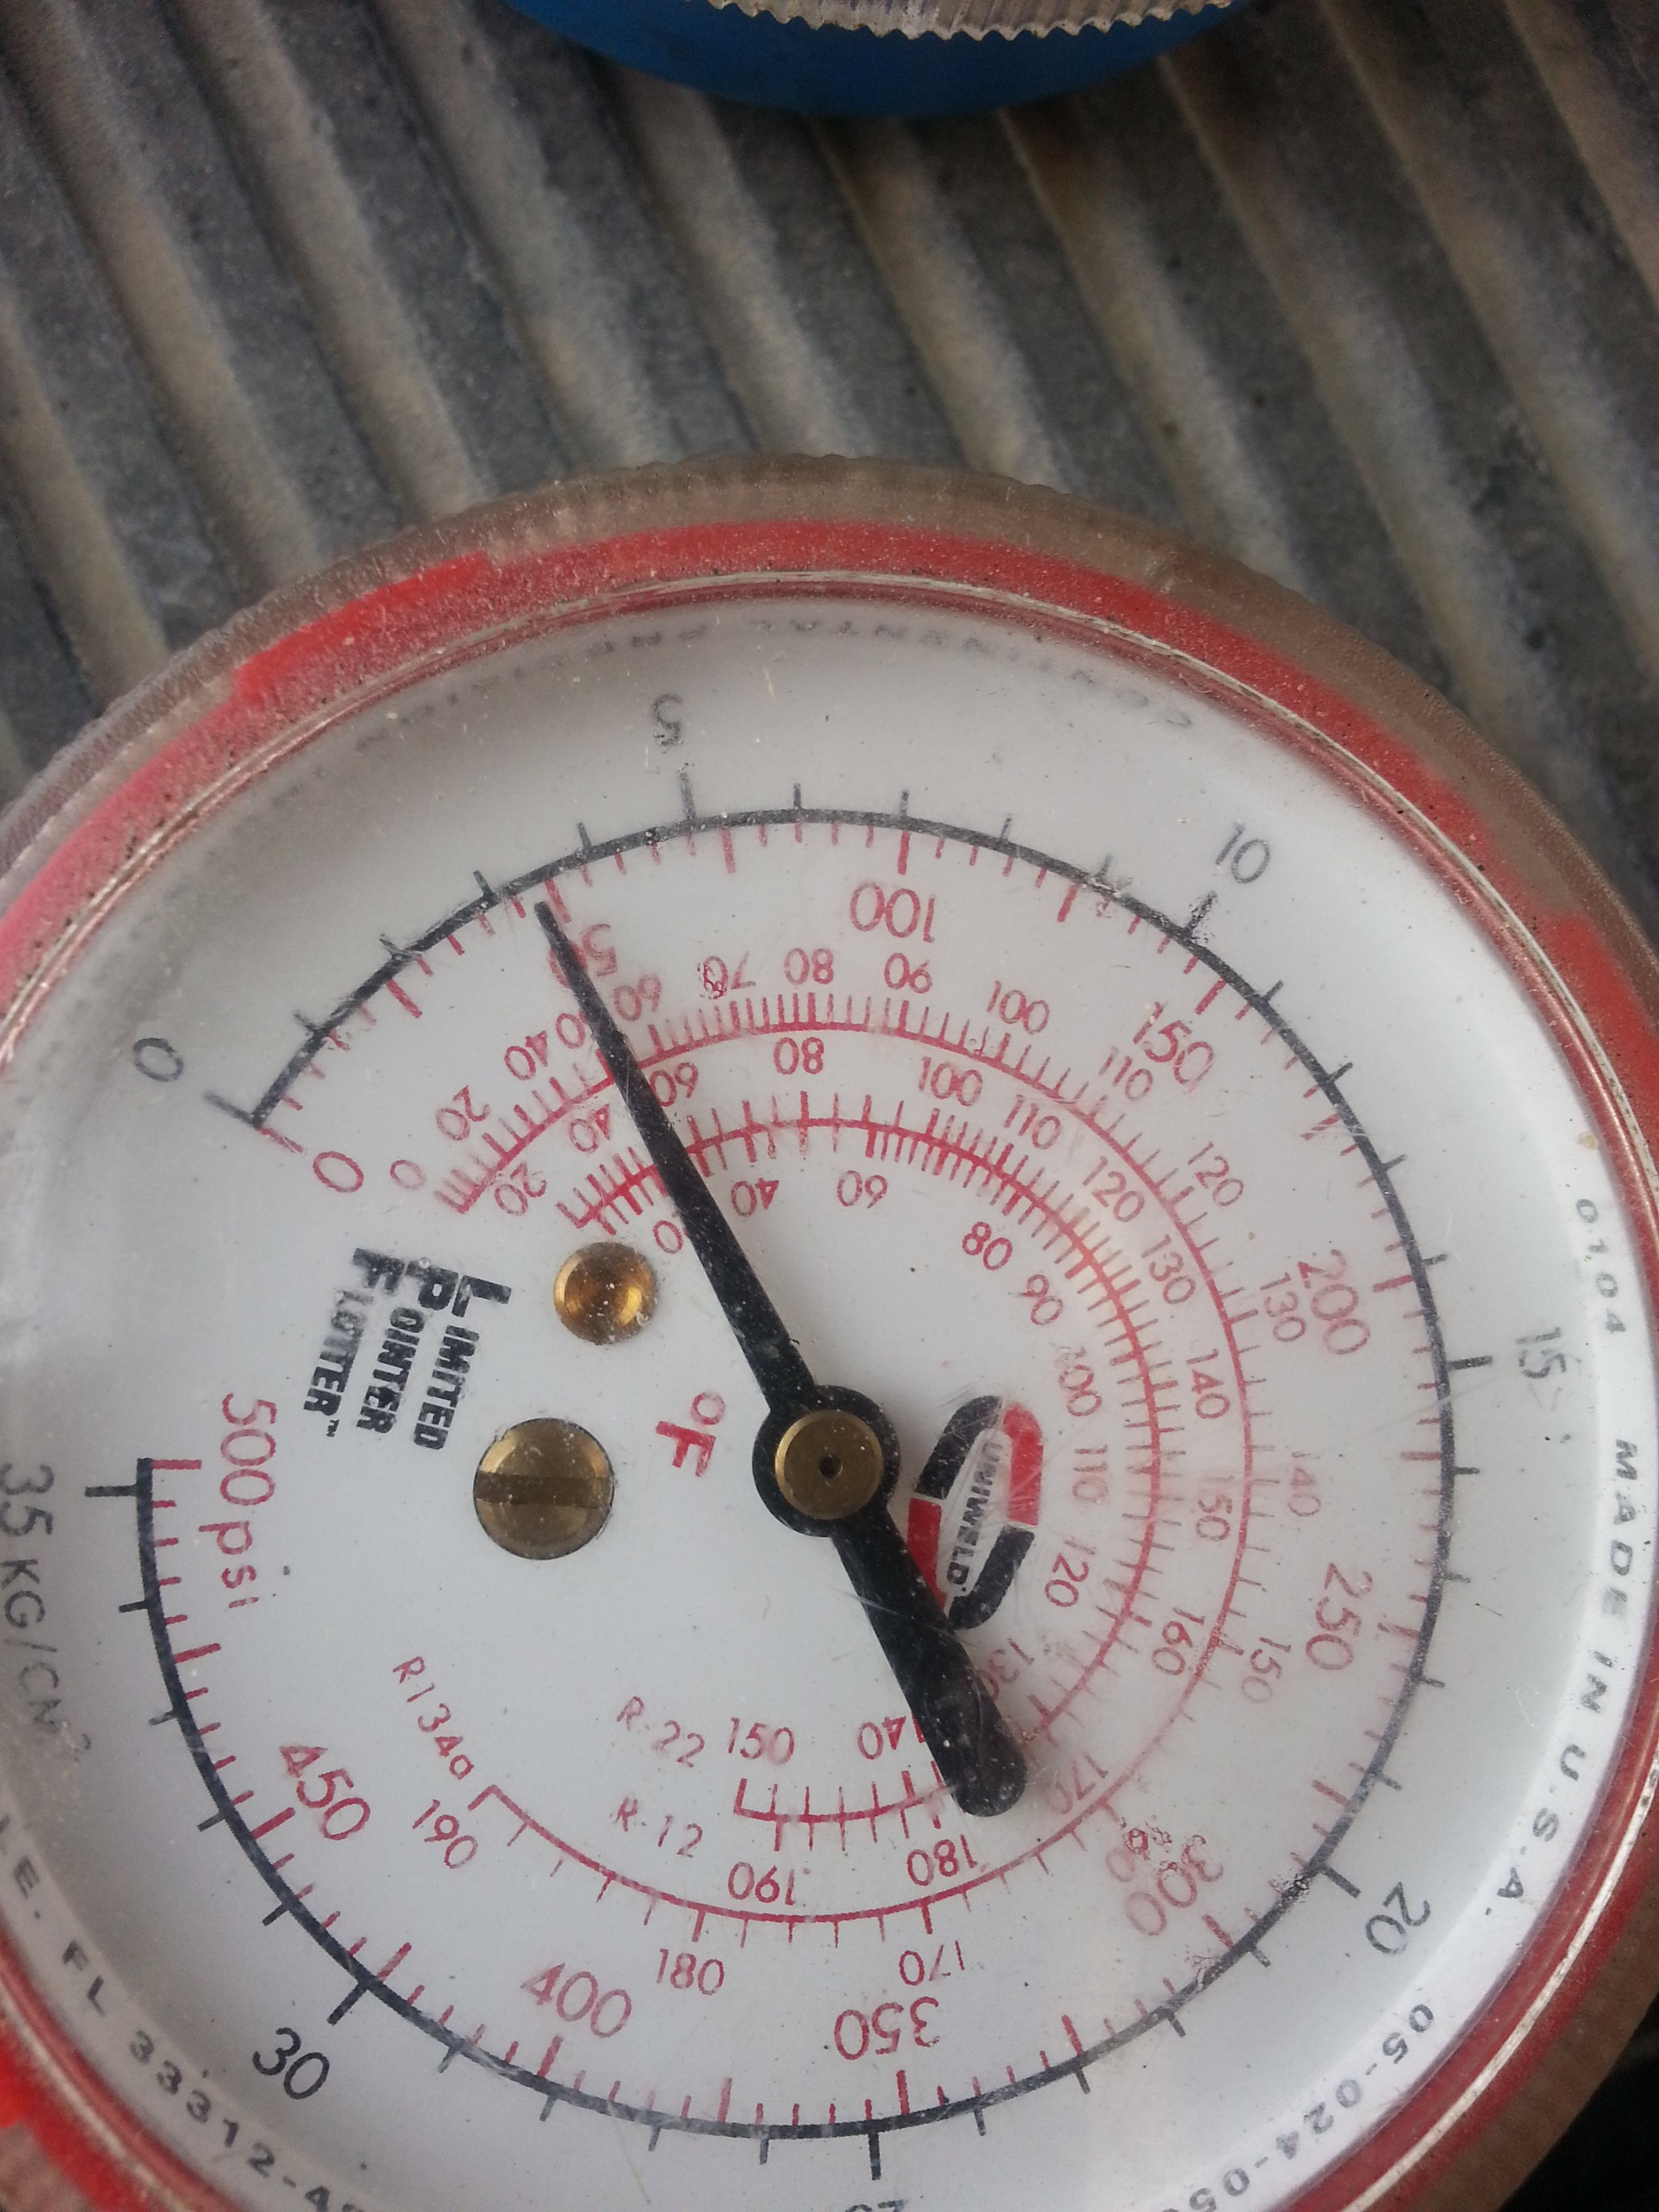 What should the freon pressure be on the high and low side